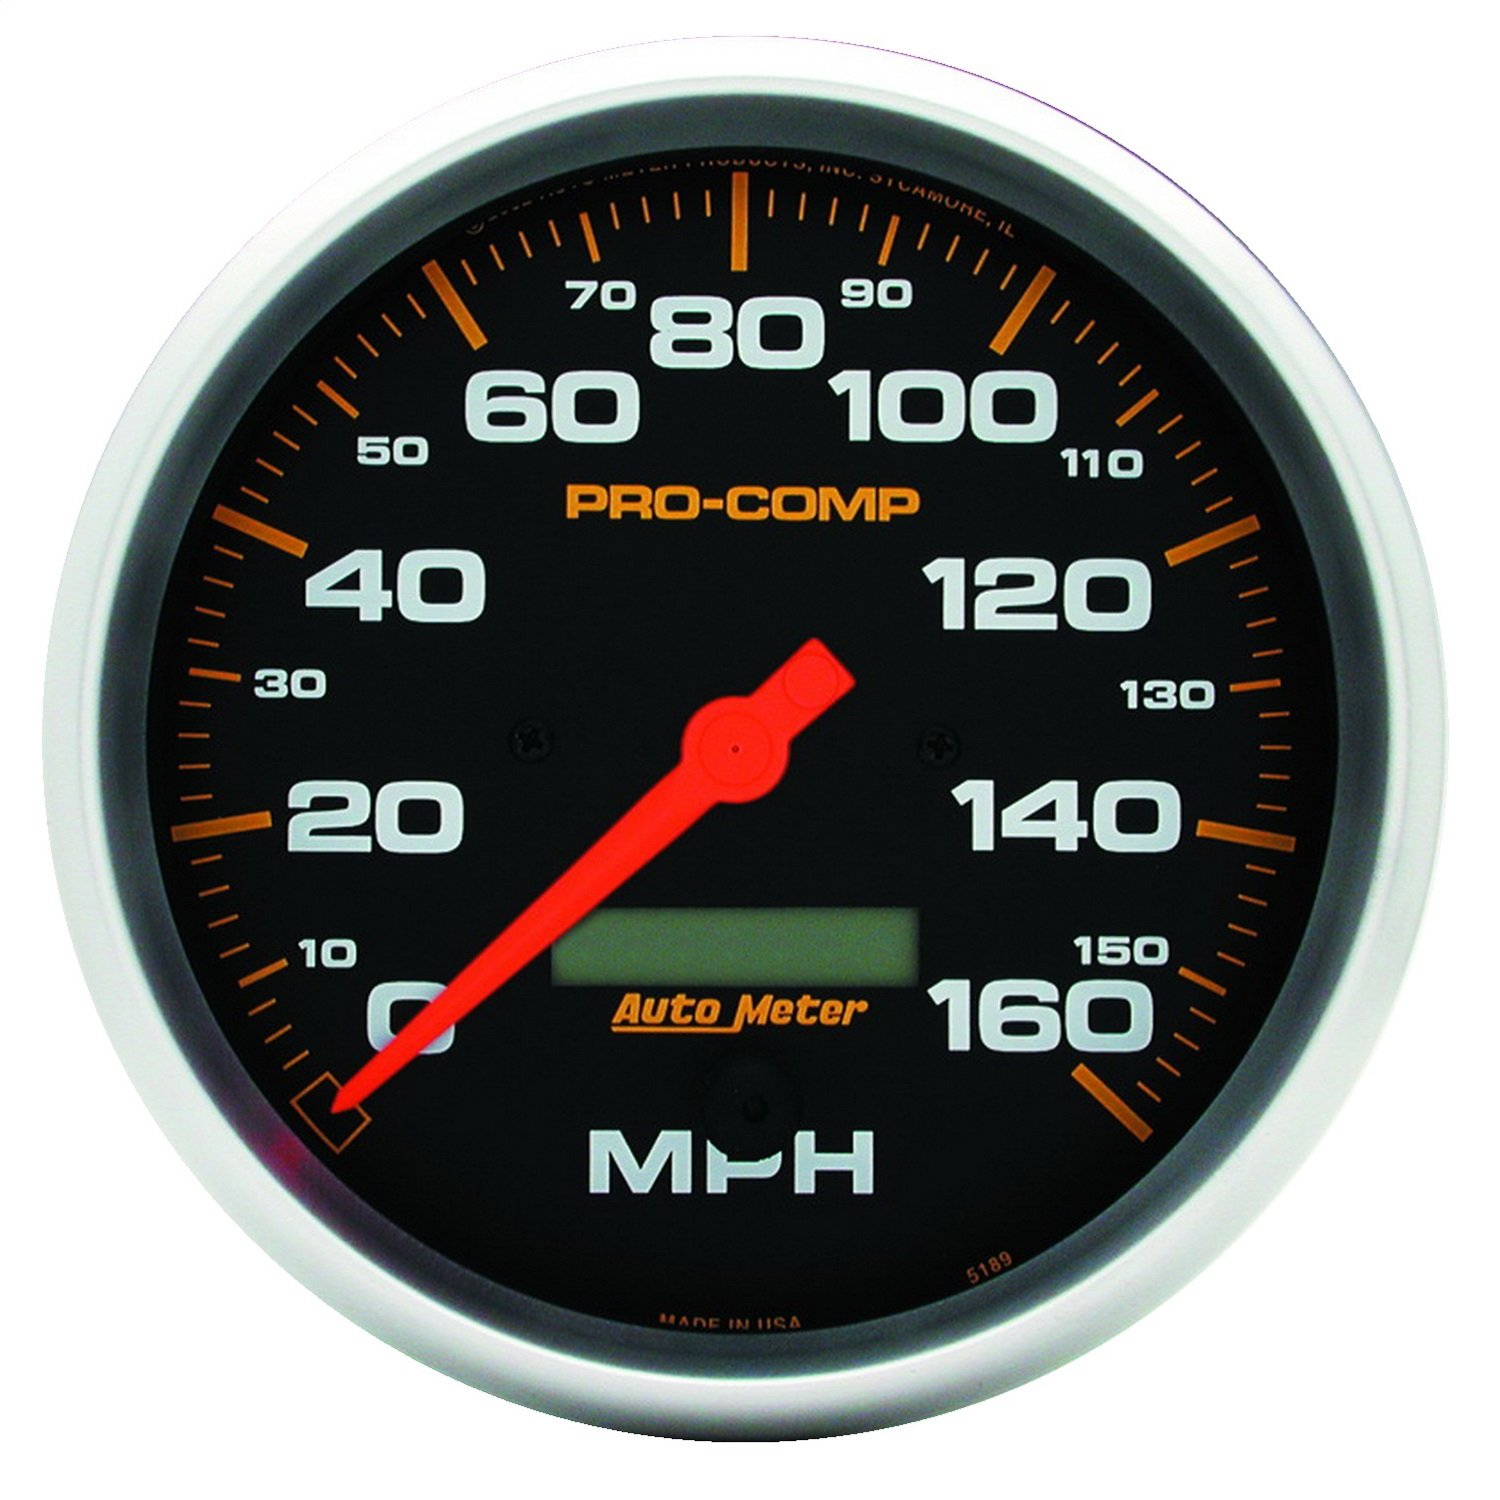 Auto Meter 5189 Pro-Comp Electric in-Dash Speedometer by AUTO METER